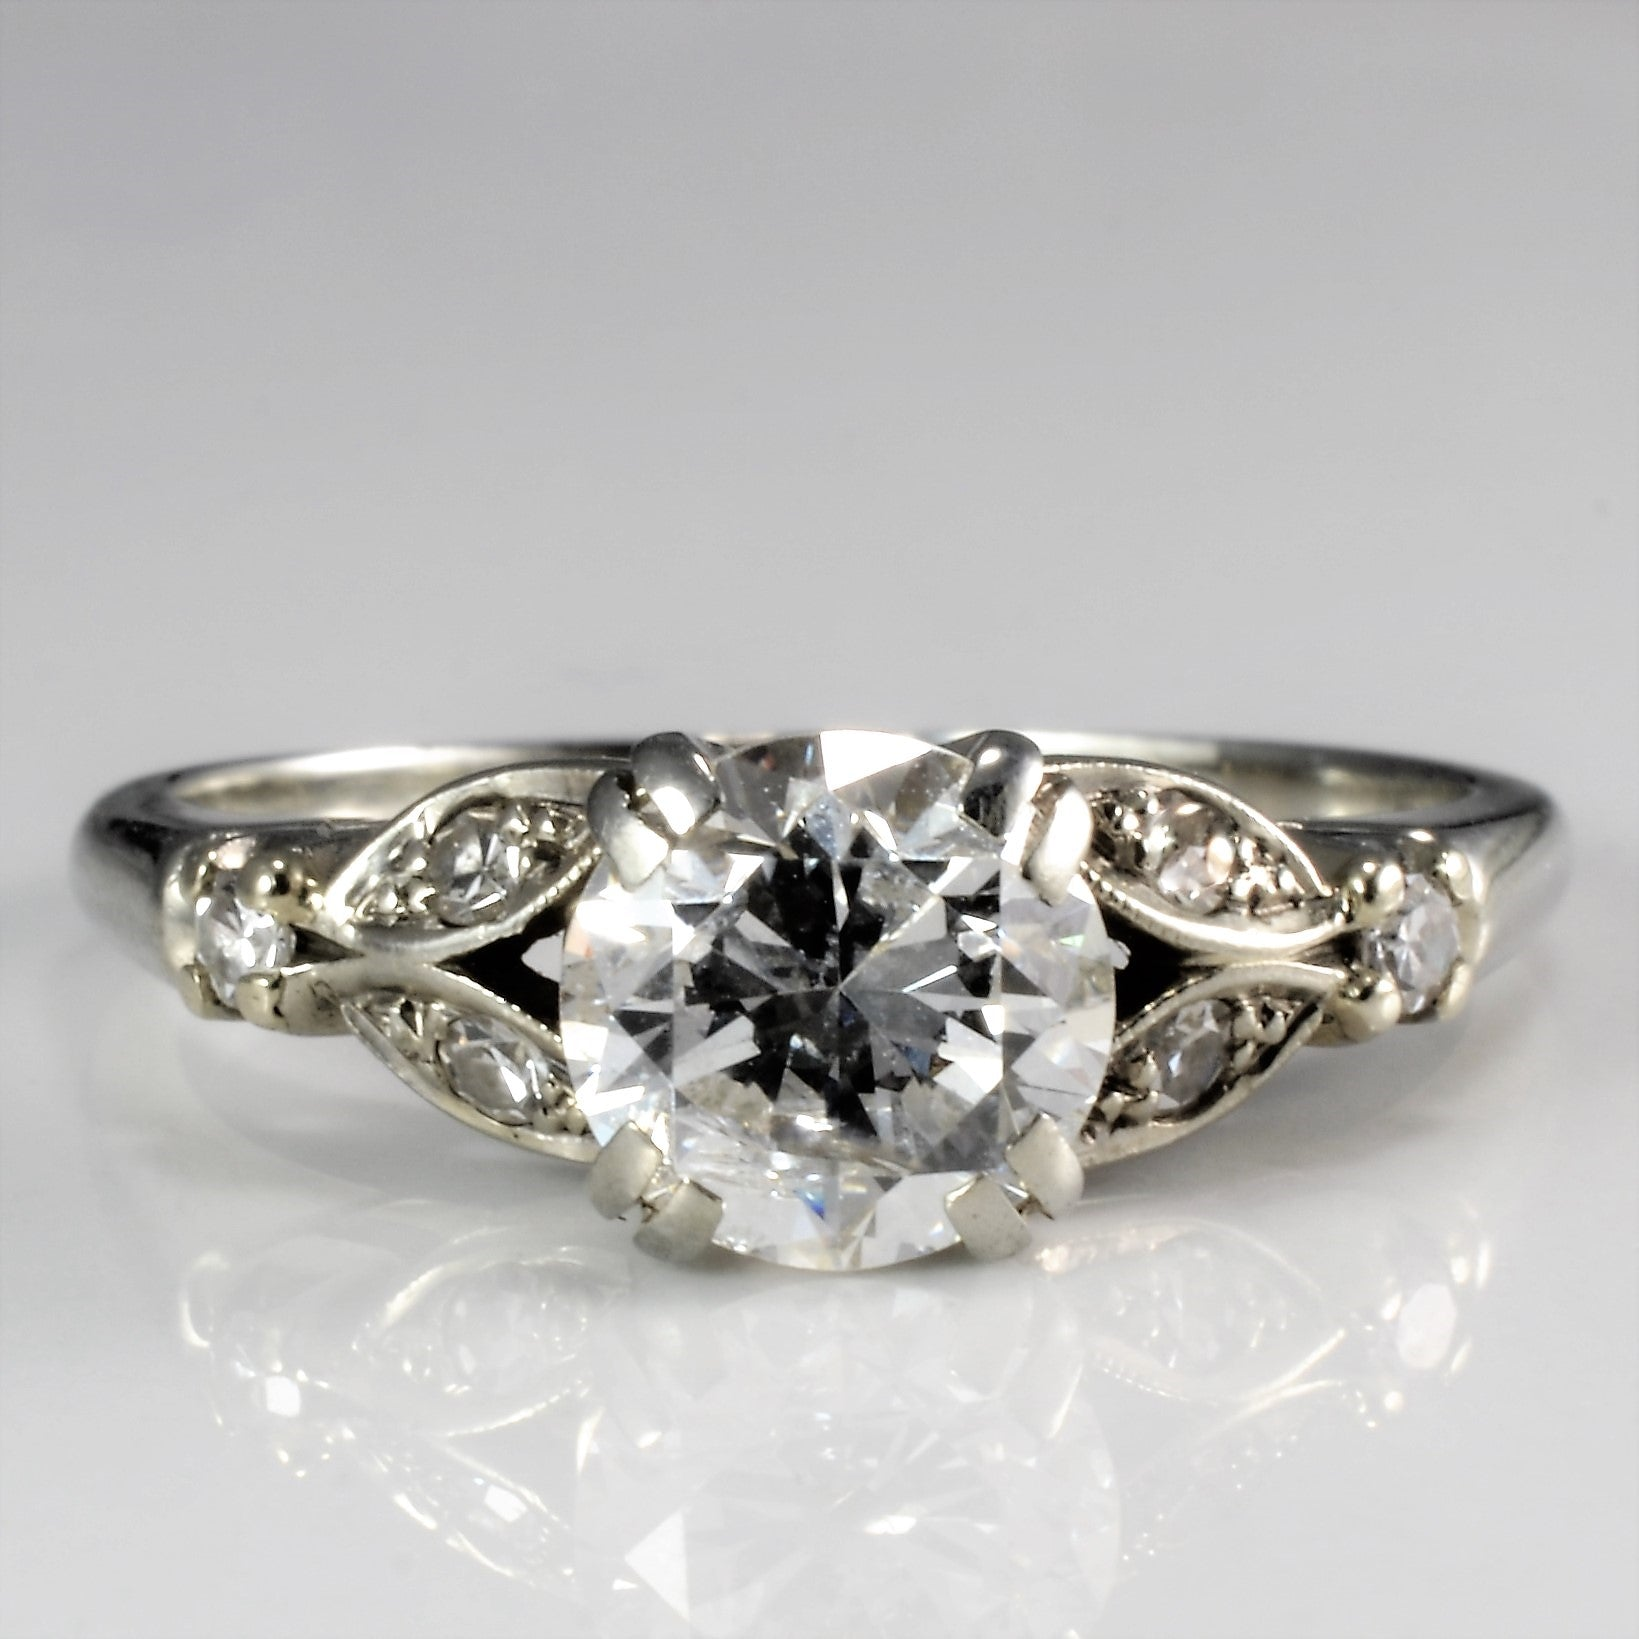 Vintage Retro Diamond Engagement Ring | 1.06 ctw, SZ 5.5 |